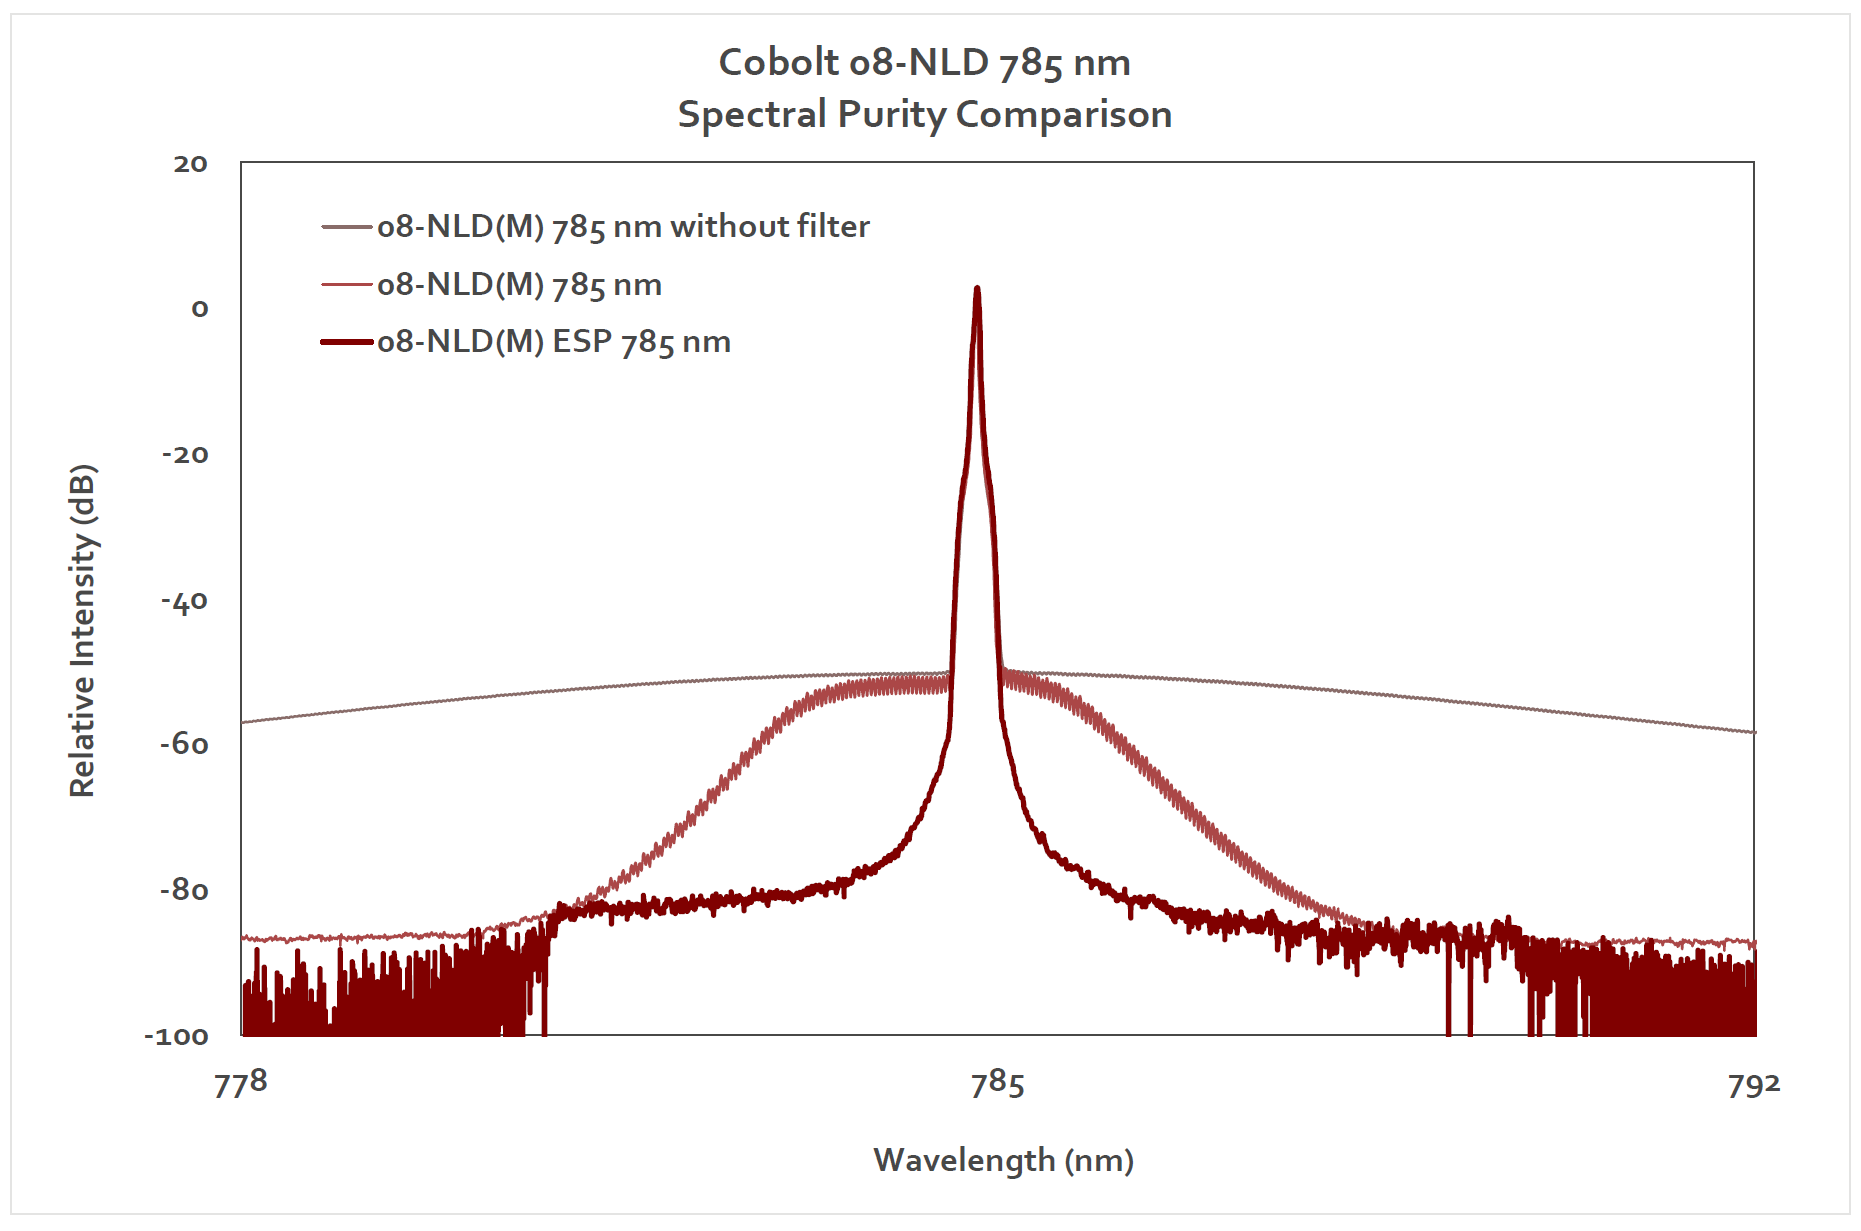 Spectral purity 785 nm laser for Raman